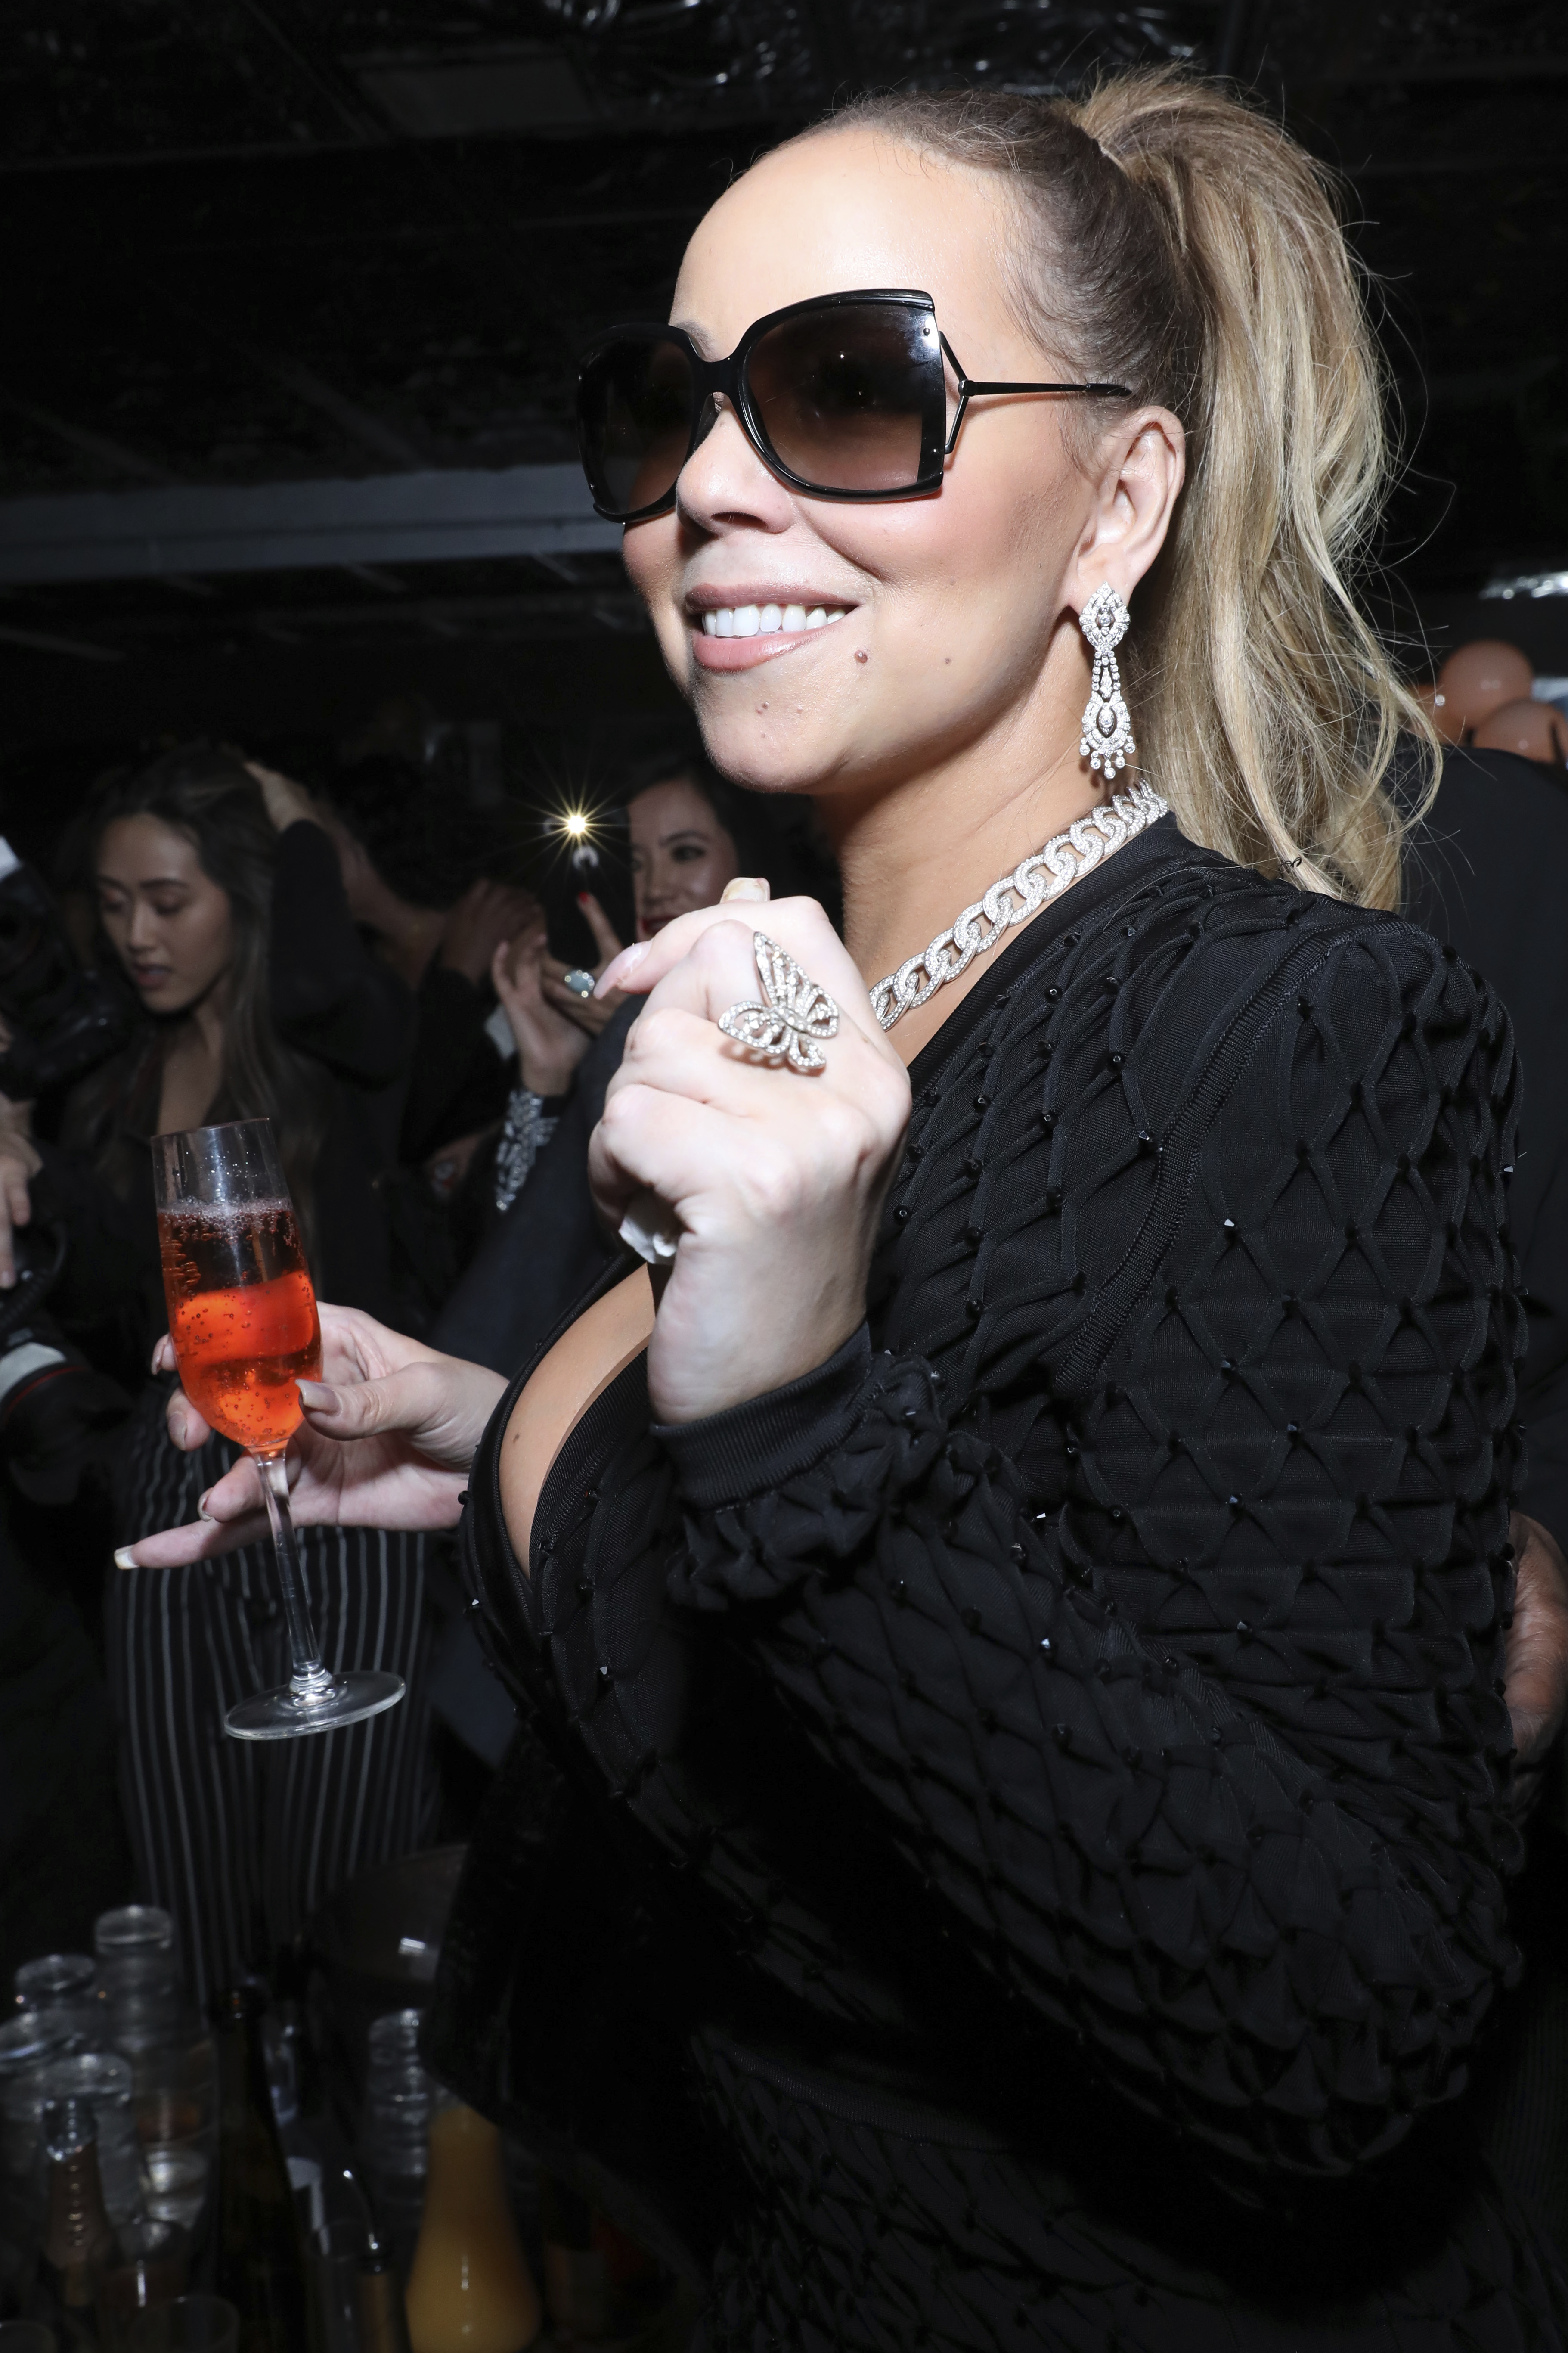 Mariah Carey poses for a photo at Floyd Mayweather's 41st Birthday Party in Los Angeles on Feb. 24, 2018.